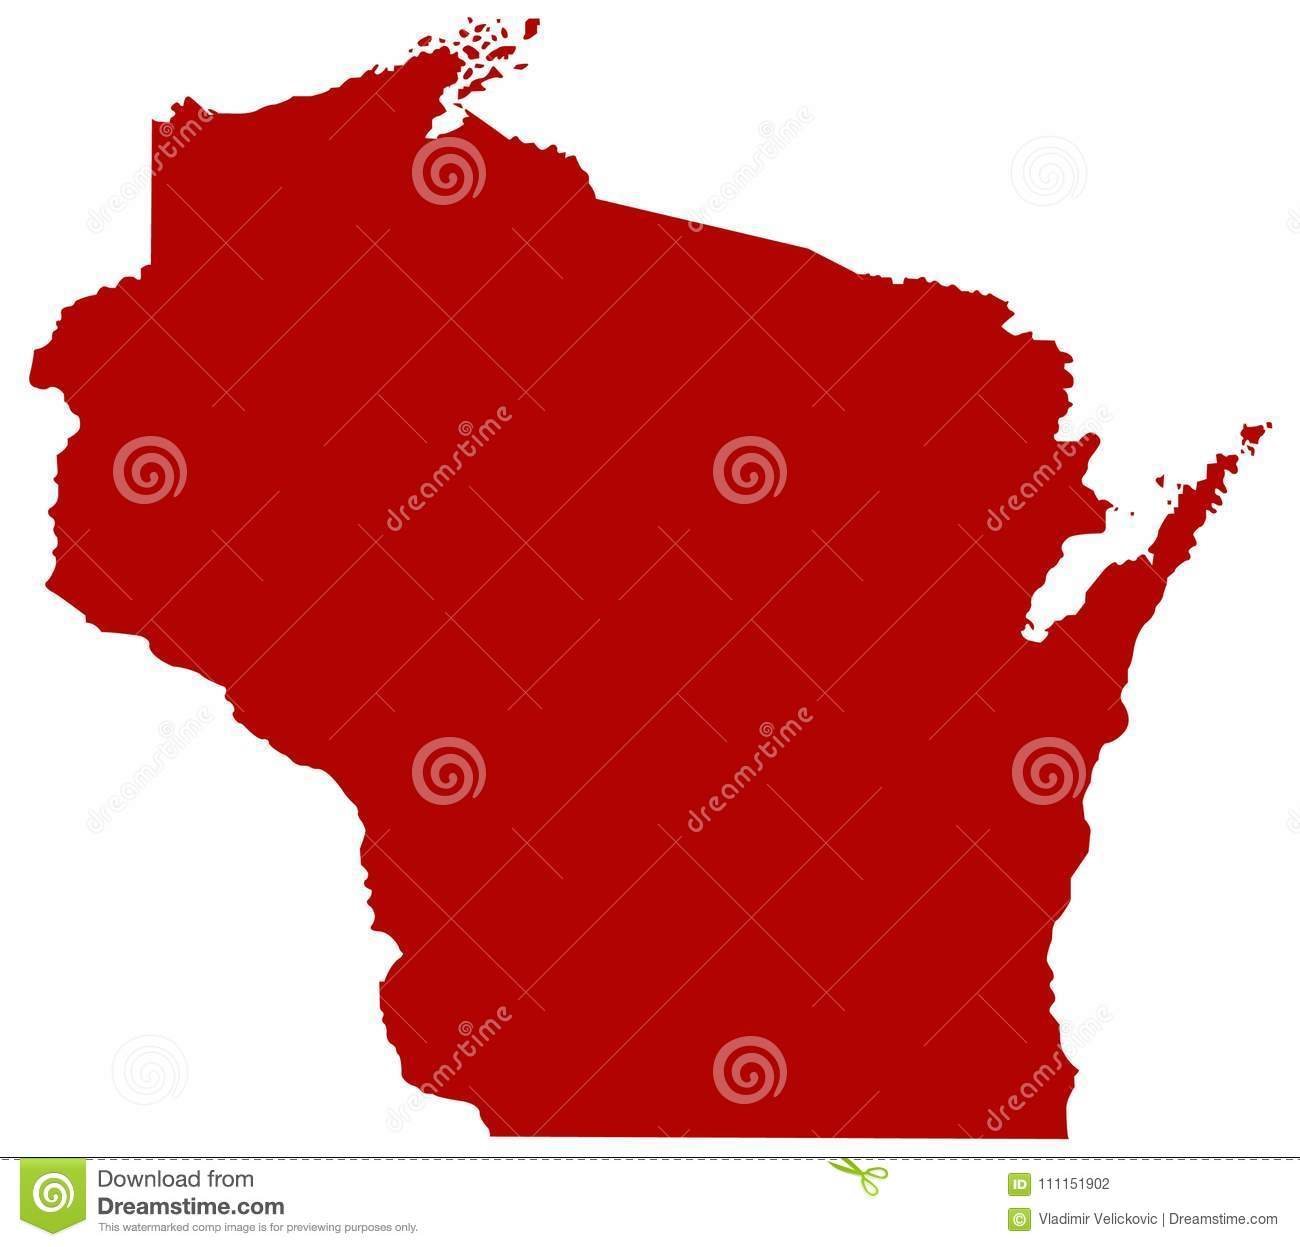 North Central Us Map.Wisconsin Map State In The North Central United States Stock